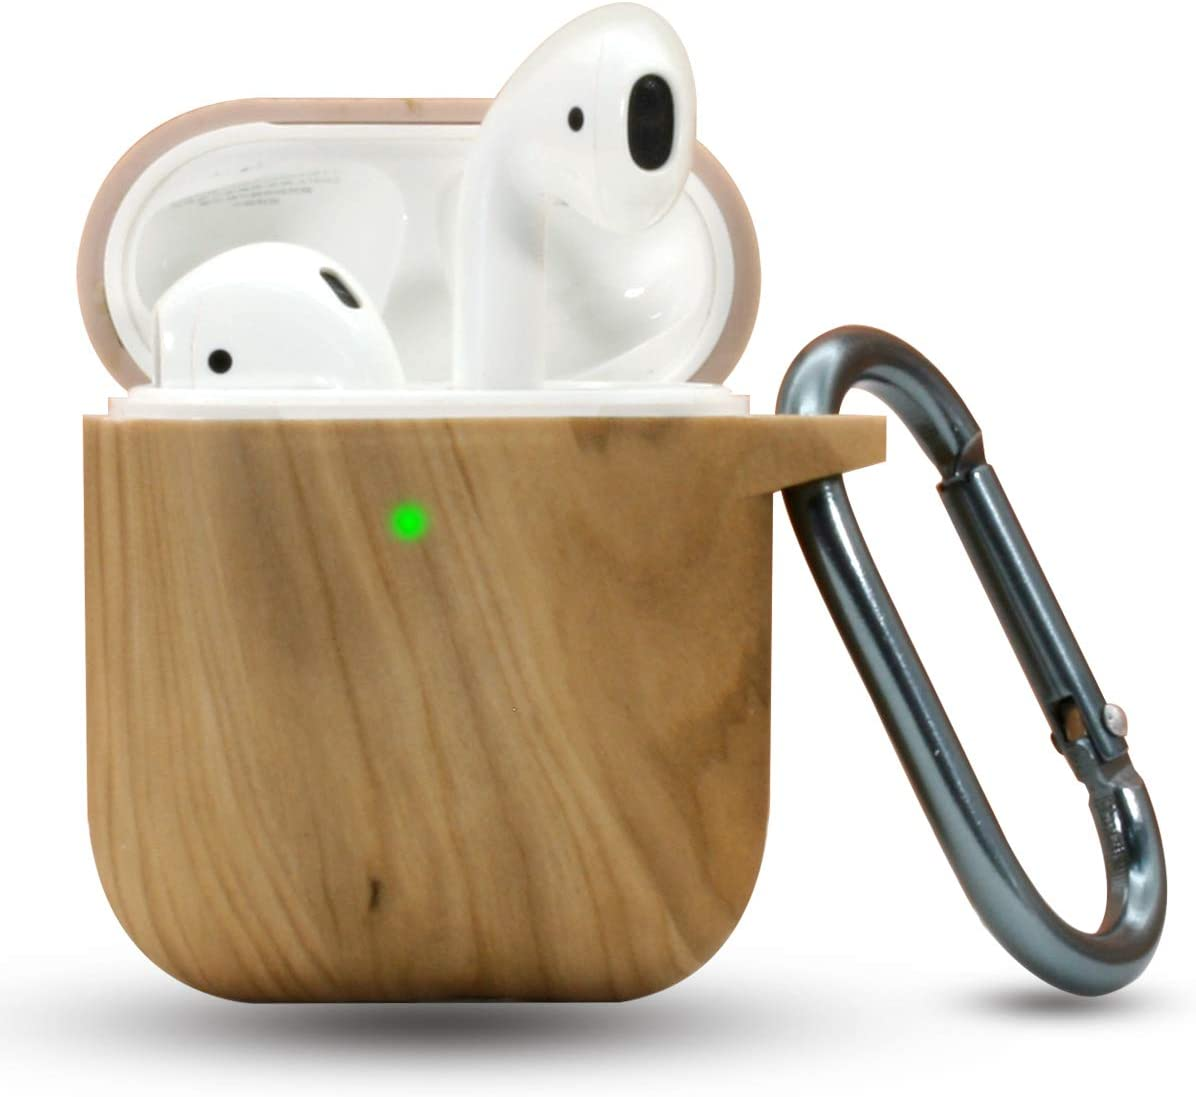 ACOUS Design AirPods Case Silicone AirPods Accessories Cover Compatible with Apple AirPods 1&2 Wireless and Wired Charging Case Front LED Visible ( Wood Pattern Light Color)